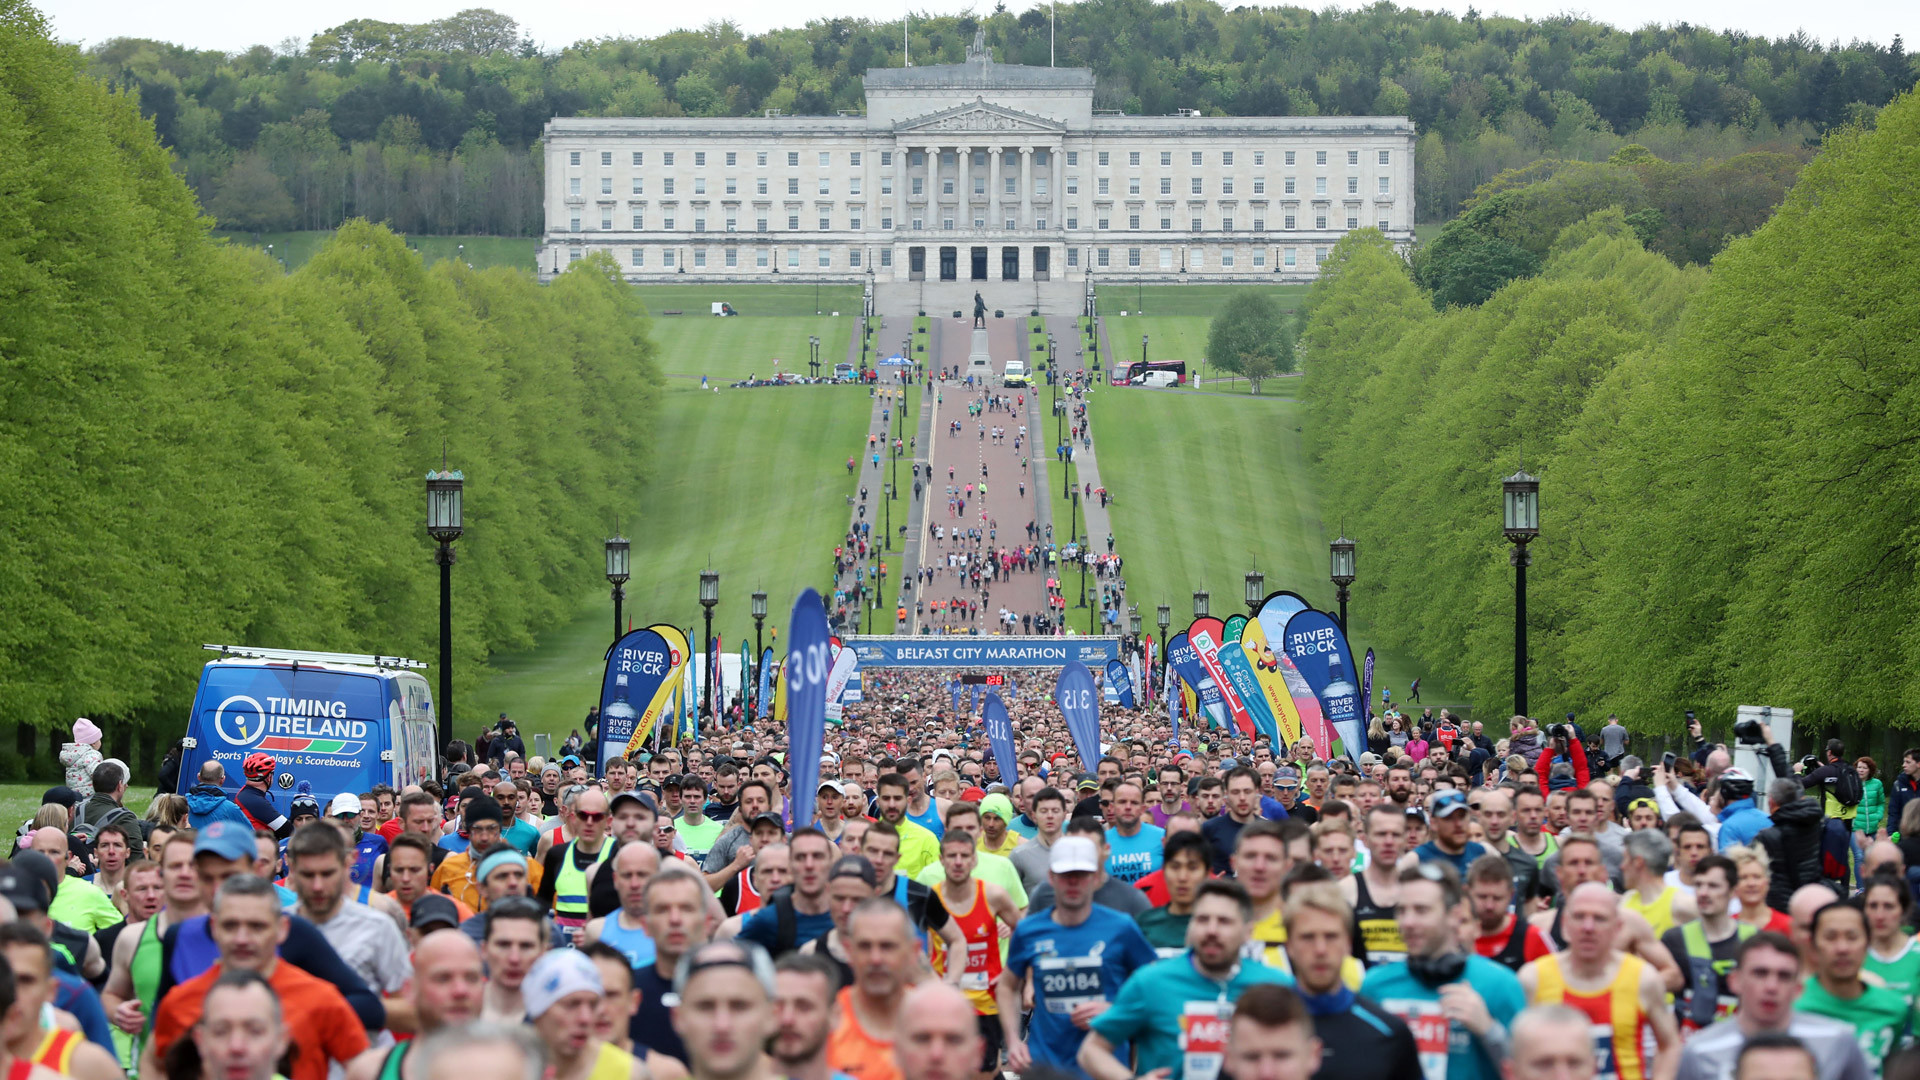 Will the 2020 Belfast Marathon take place as schedule September 20? It doesn't look good